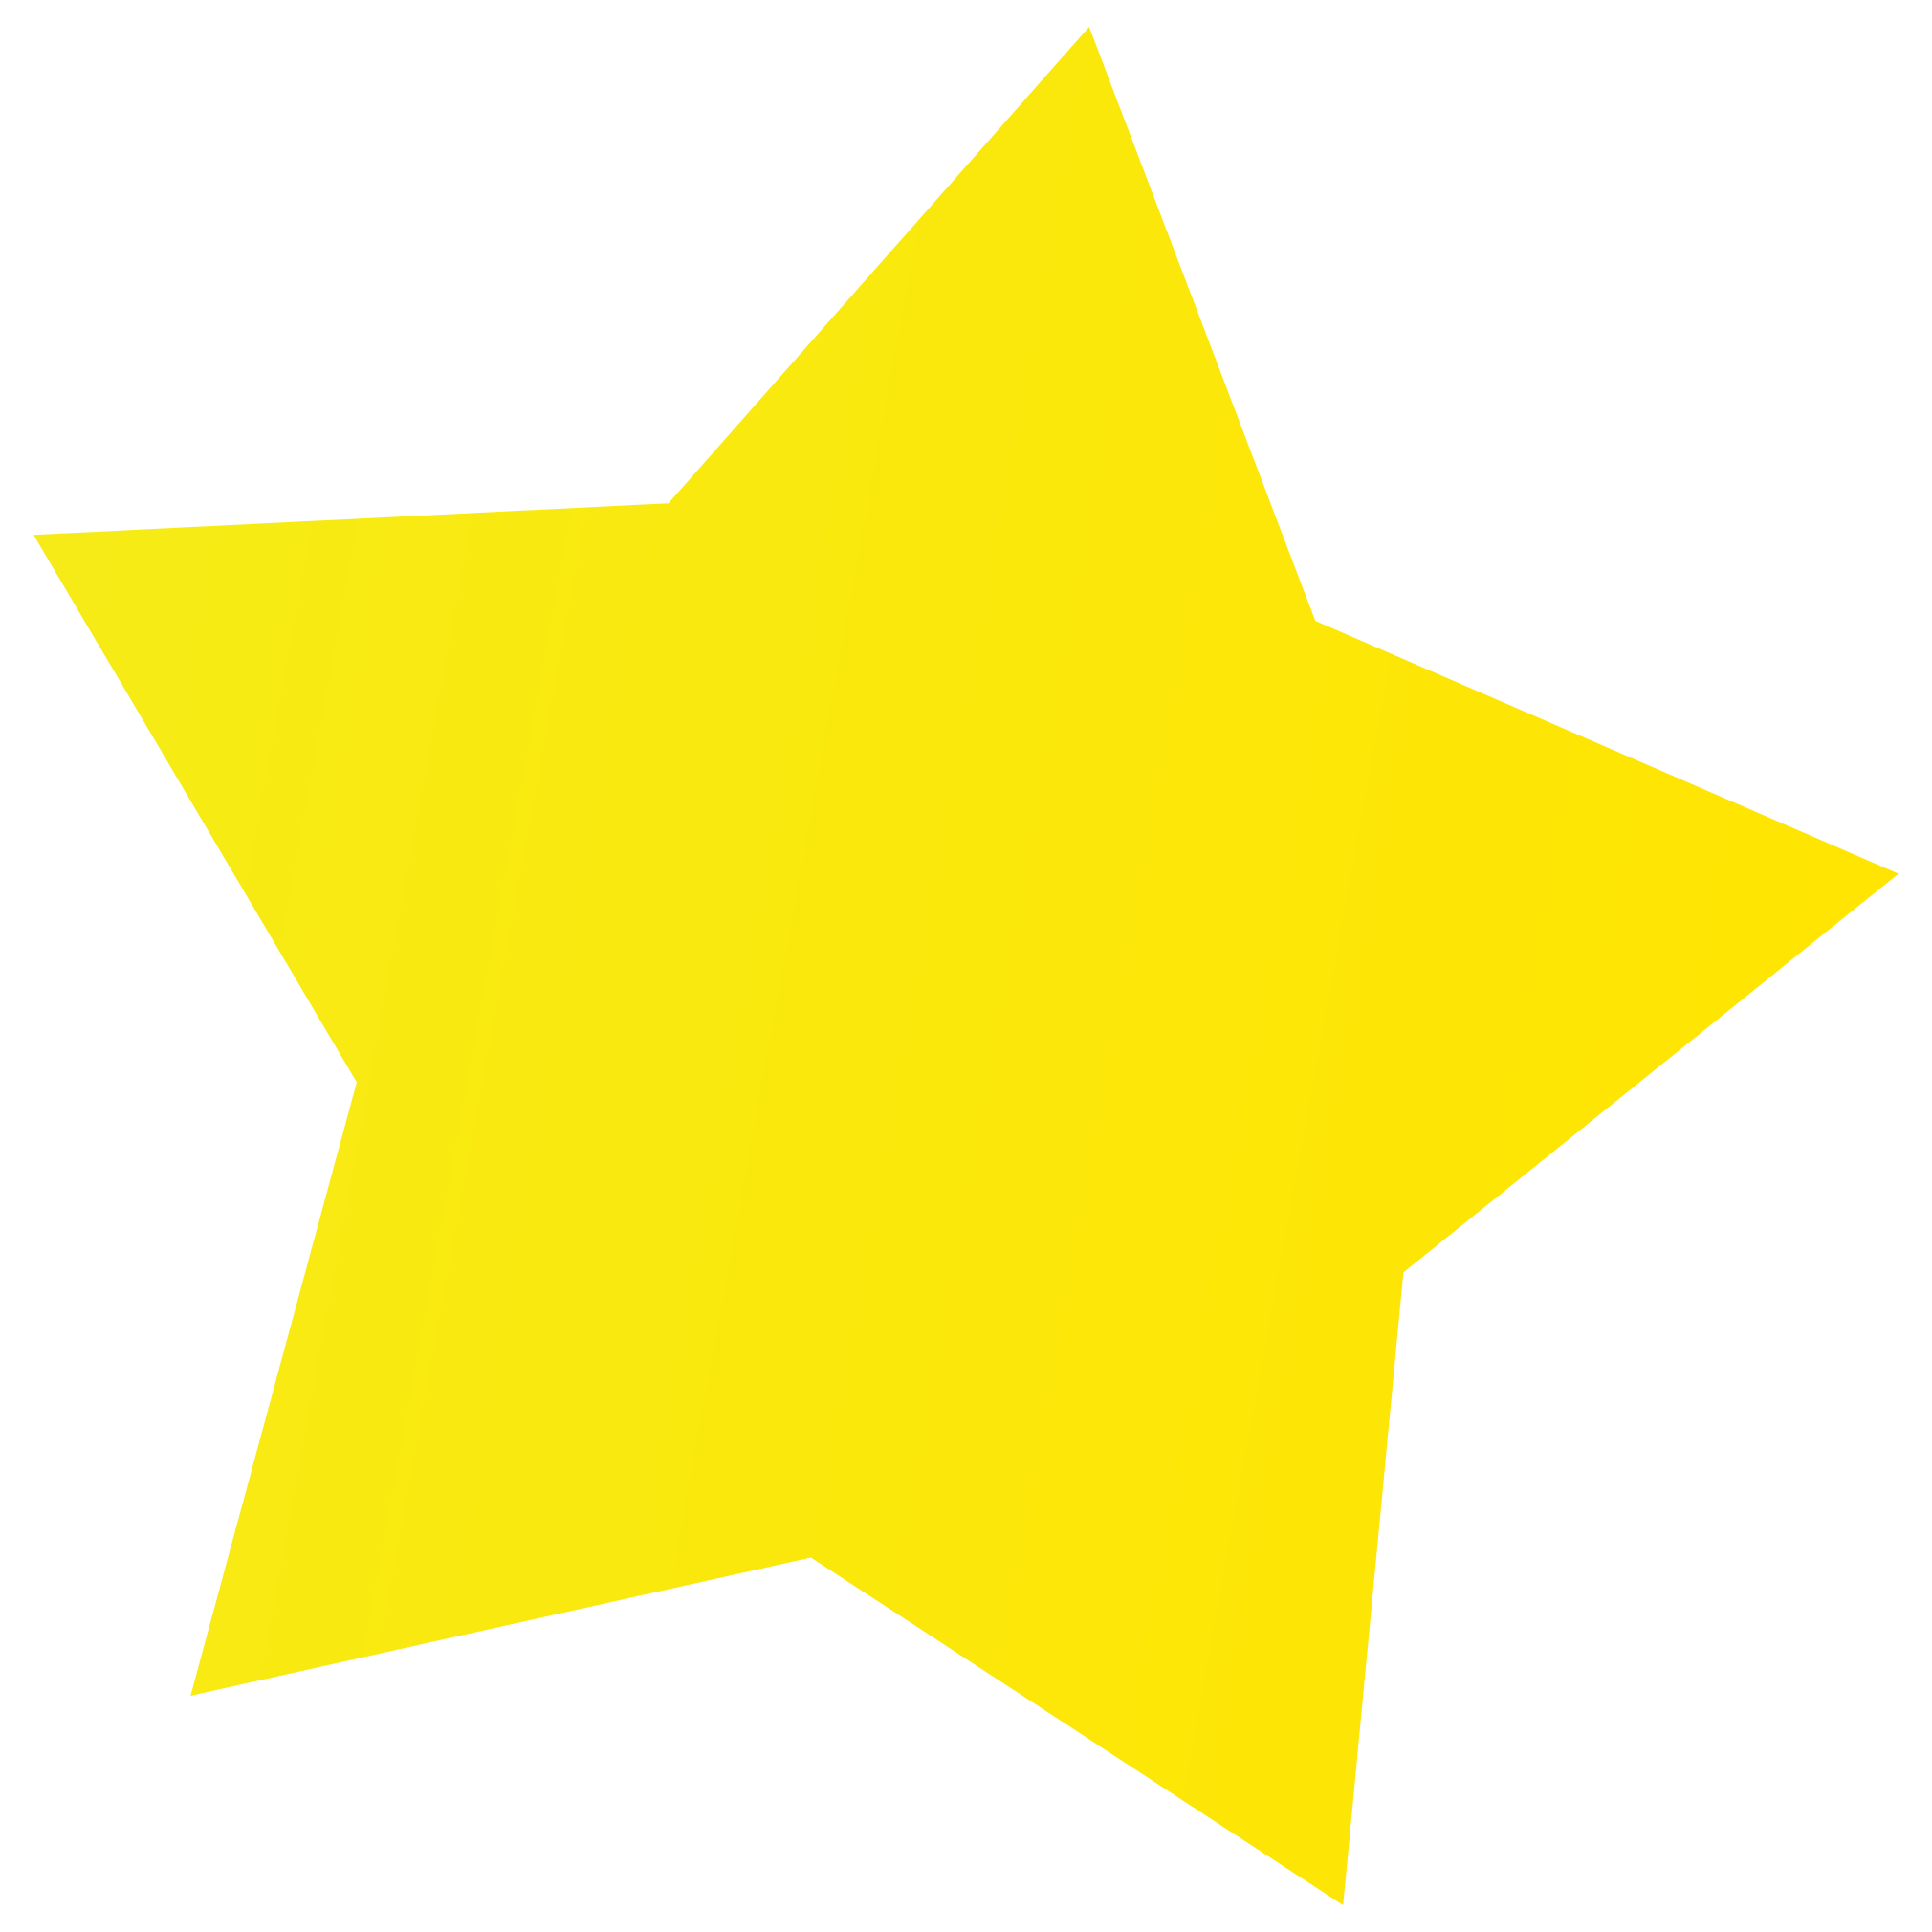 Clip Art Star Png ClipArt Best Image #616 - Star PNG